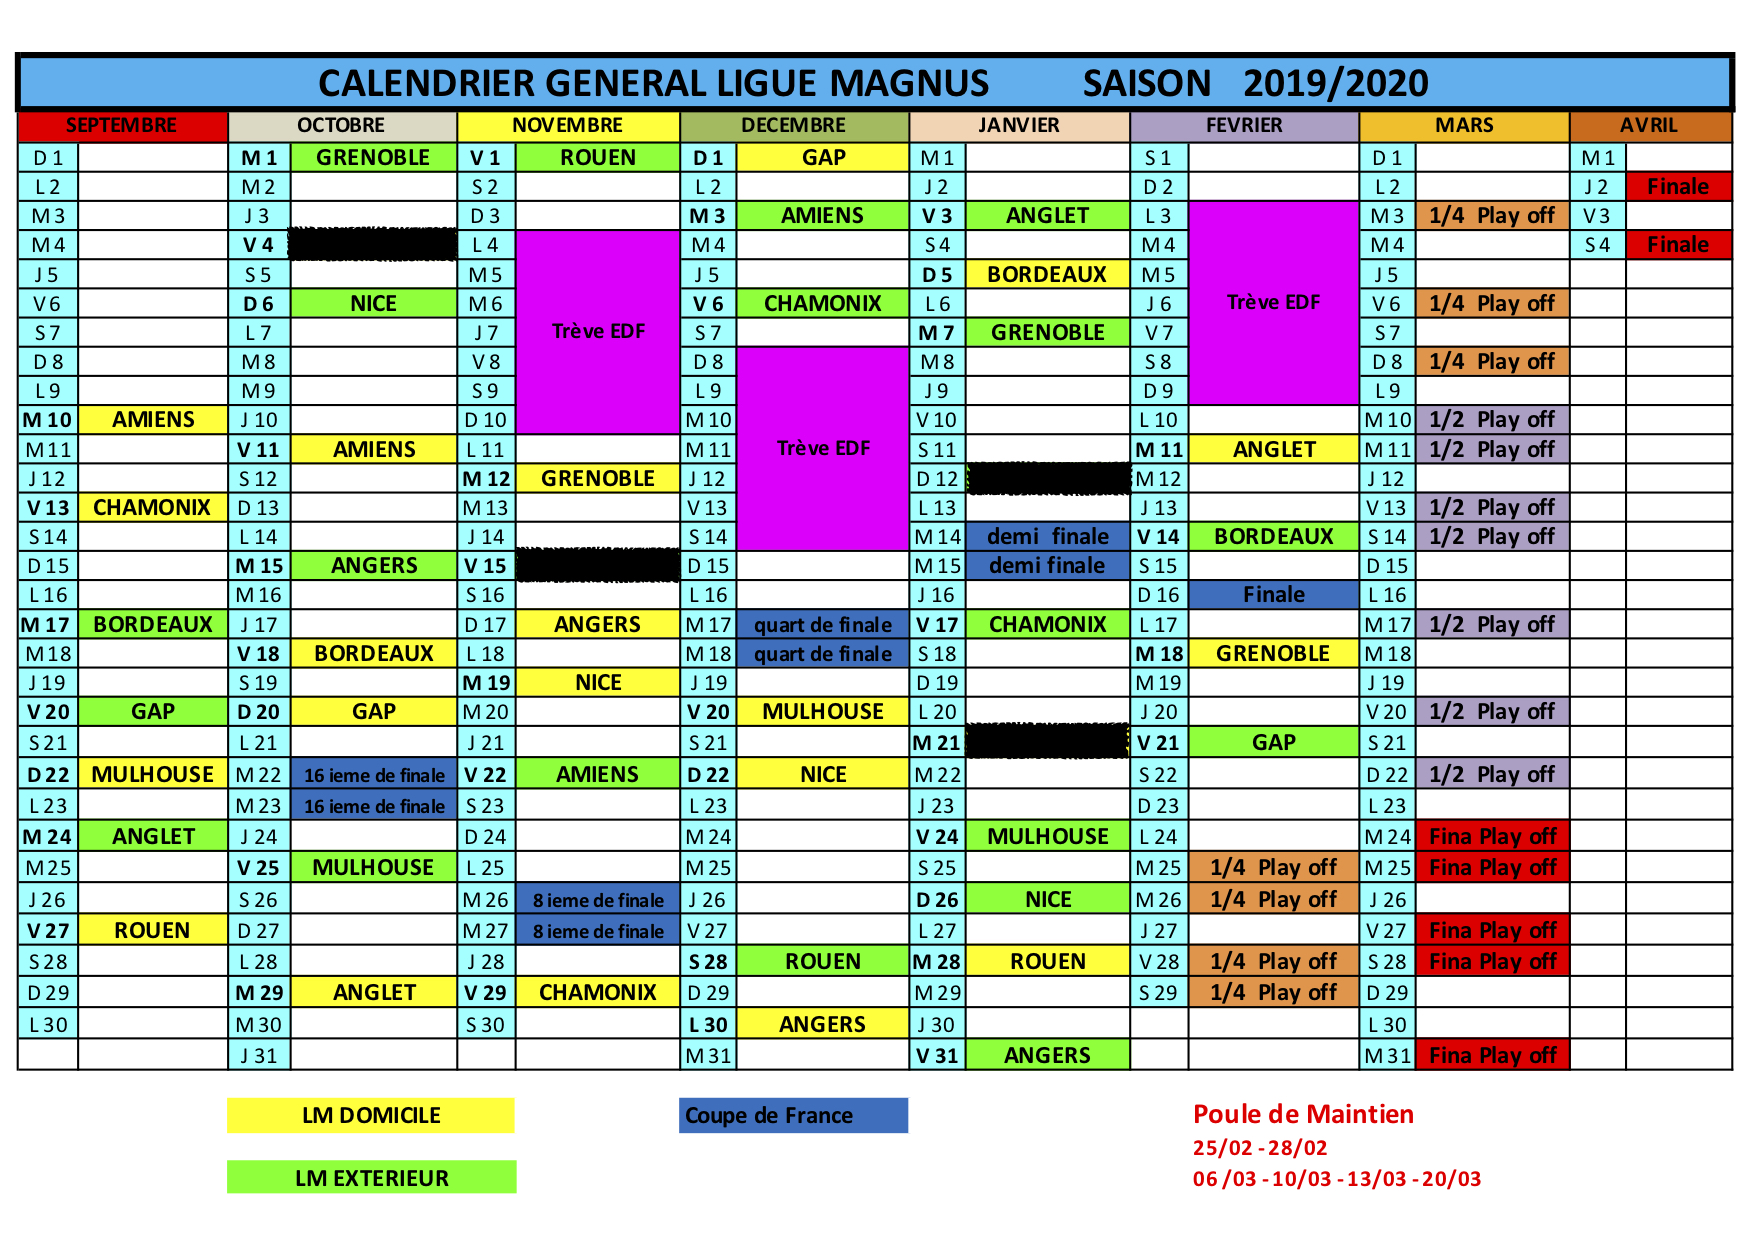 Coupe De France Calendrier 2020.Calendrier 2019 2020 Les Diables Rouges De Briancon